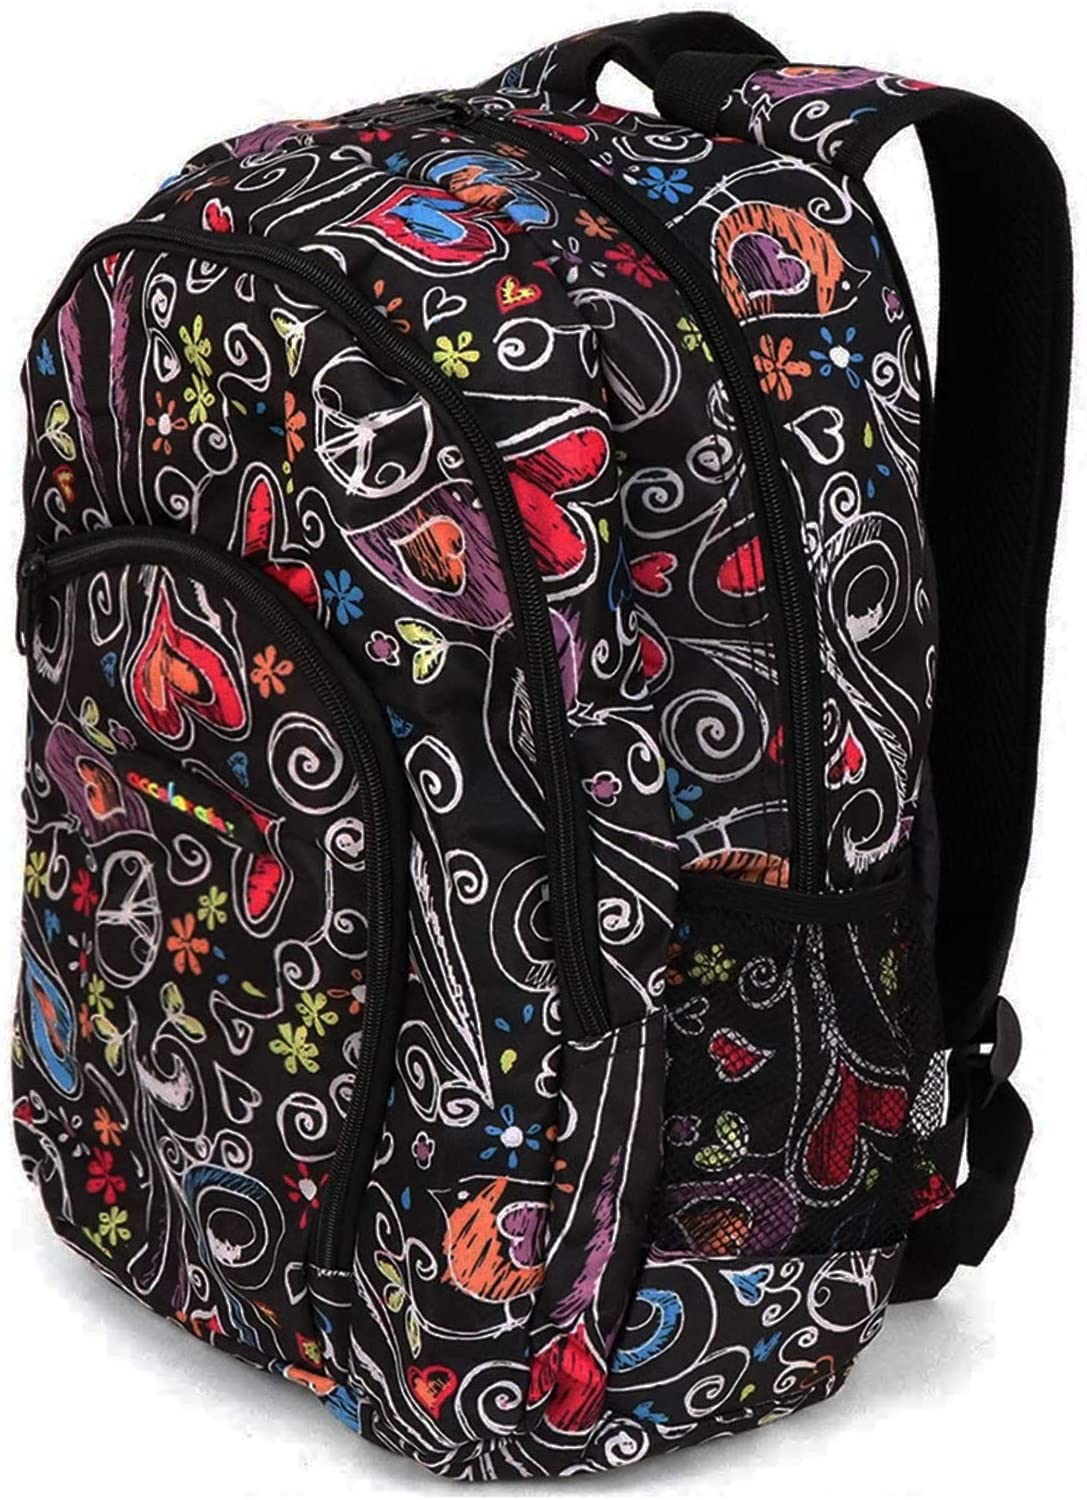 School Backpack 70% 25% OFF OFF Outlet for Kids Heavy Duty Bag with Padded Adjustable